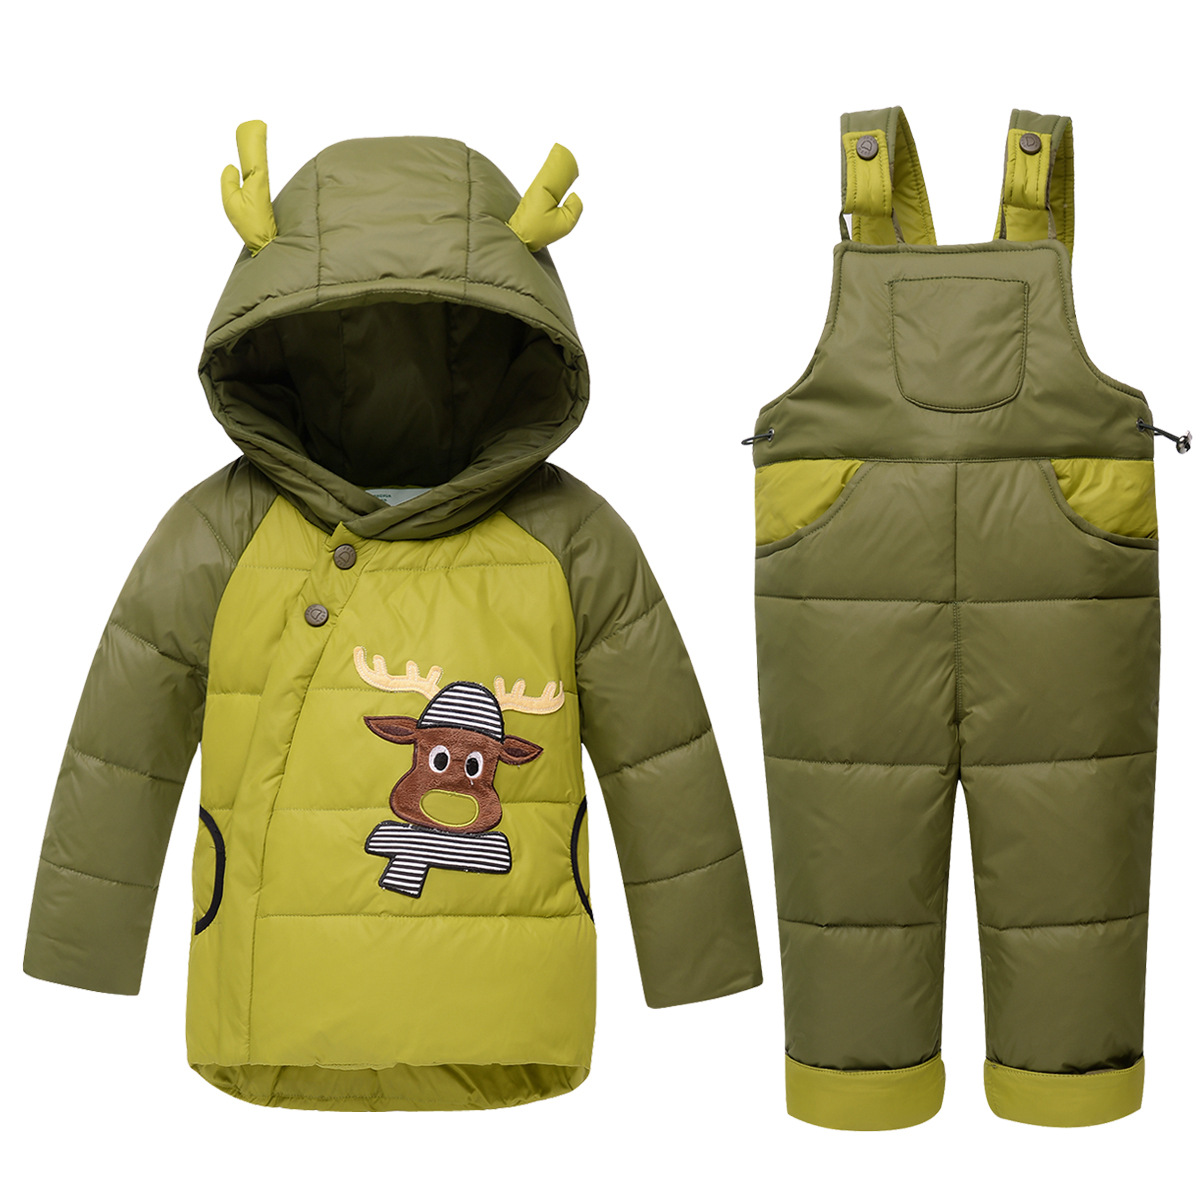 Mioigee Baby Children Boys Girls  Thick Coat+Jumpsuit Baby Clothes Set Kids Jacket Animal Deer Winter Warm Down Jacket Suit Set new 2017 winter baby thickening collar warm jacket children s down jacket boys and girls short thick jacket for cold 30 degree